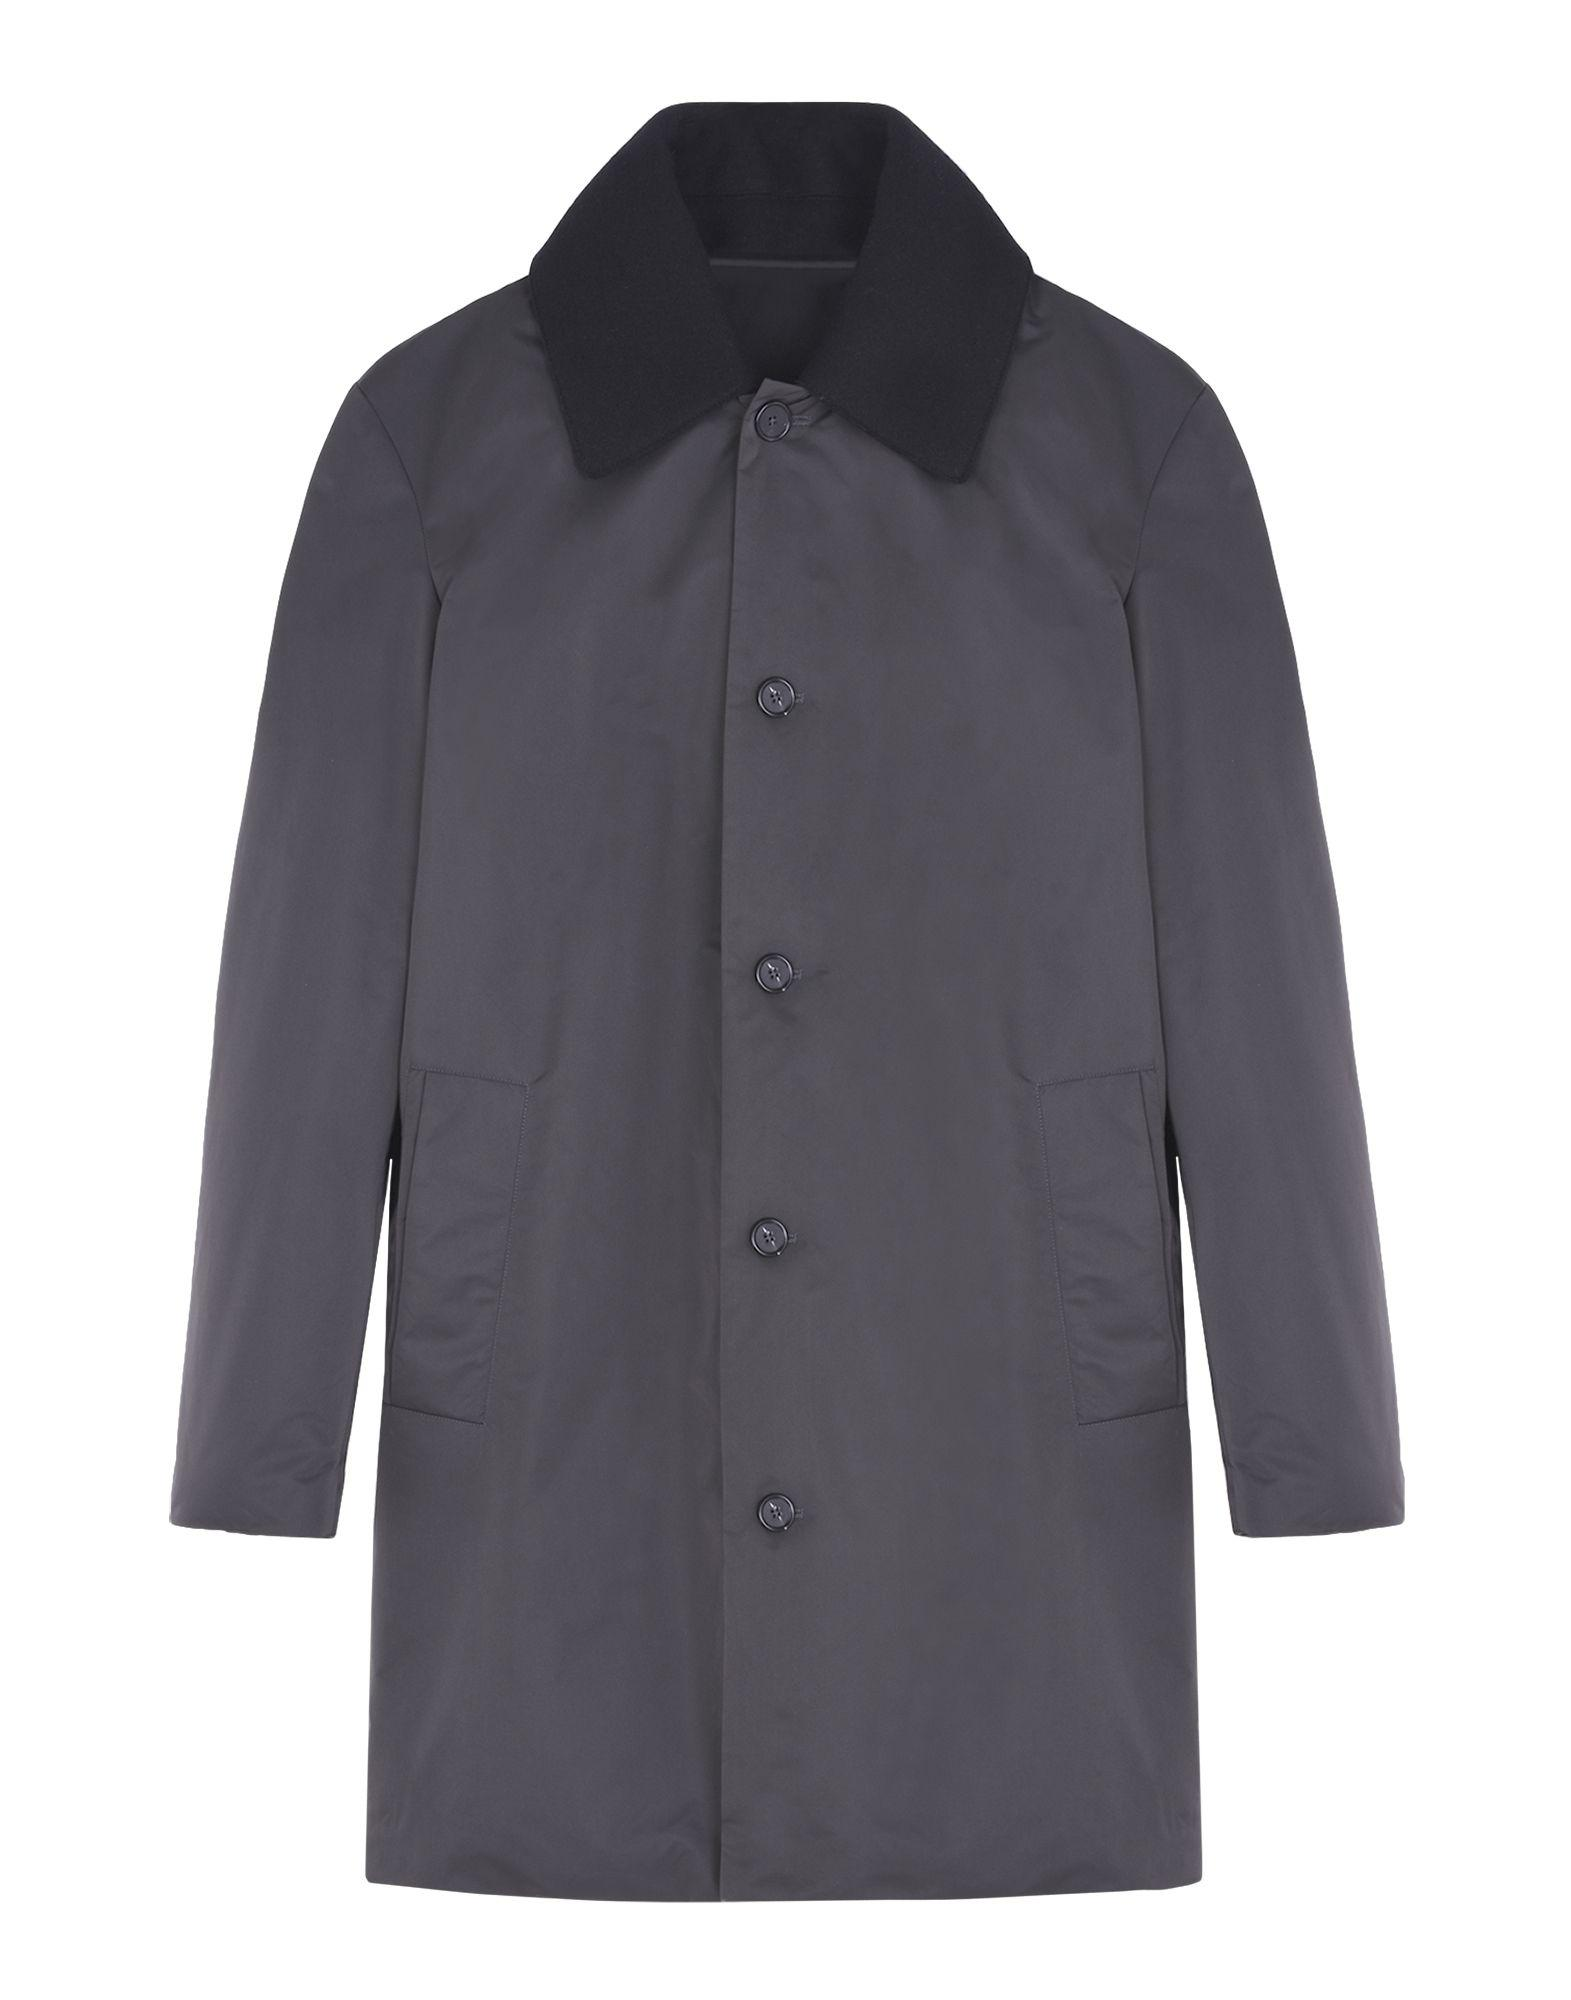 Jil Sander Coat - Grey